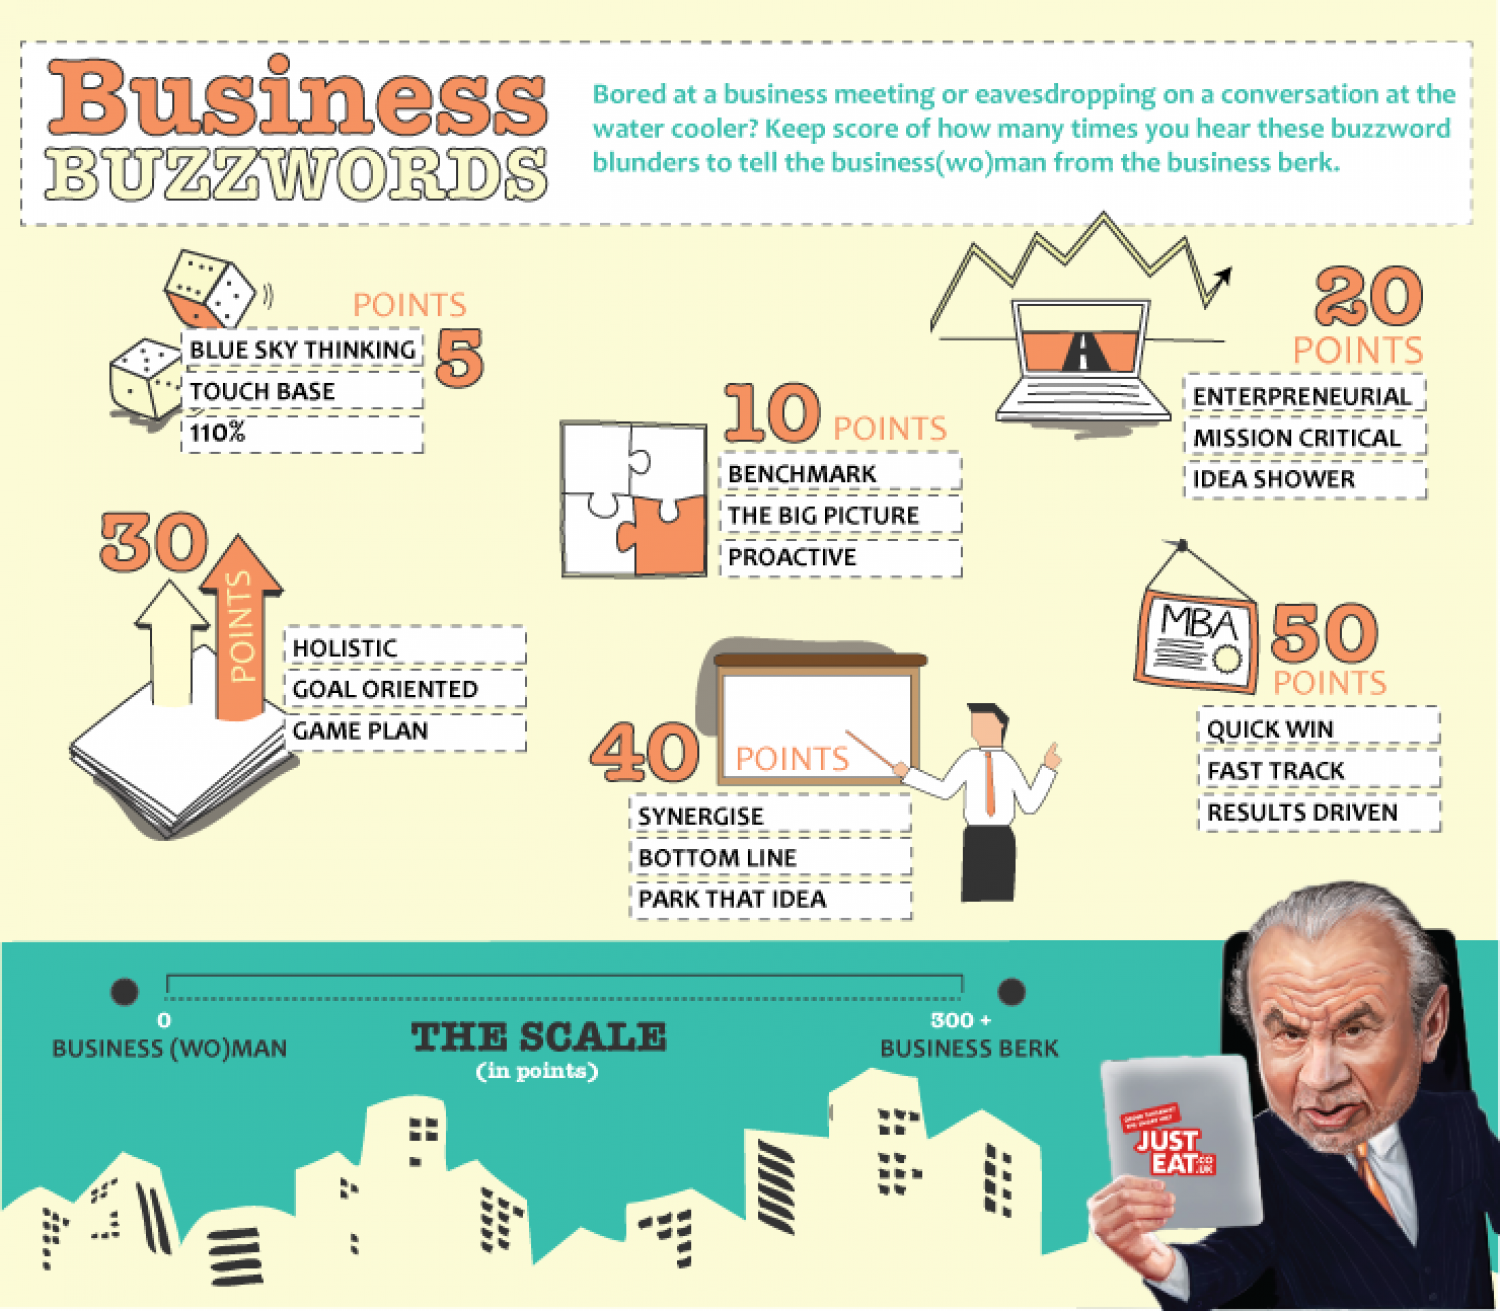 Business Buzzword Game Infographic